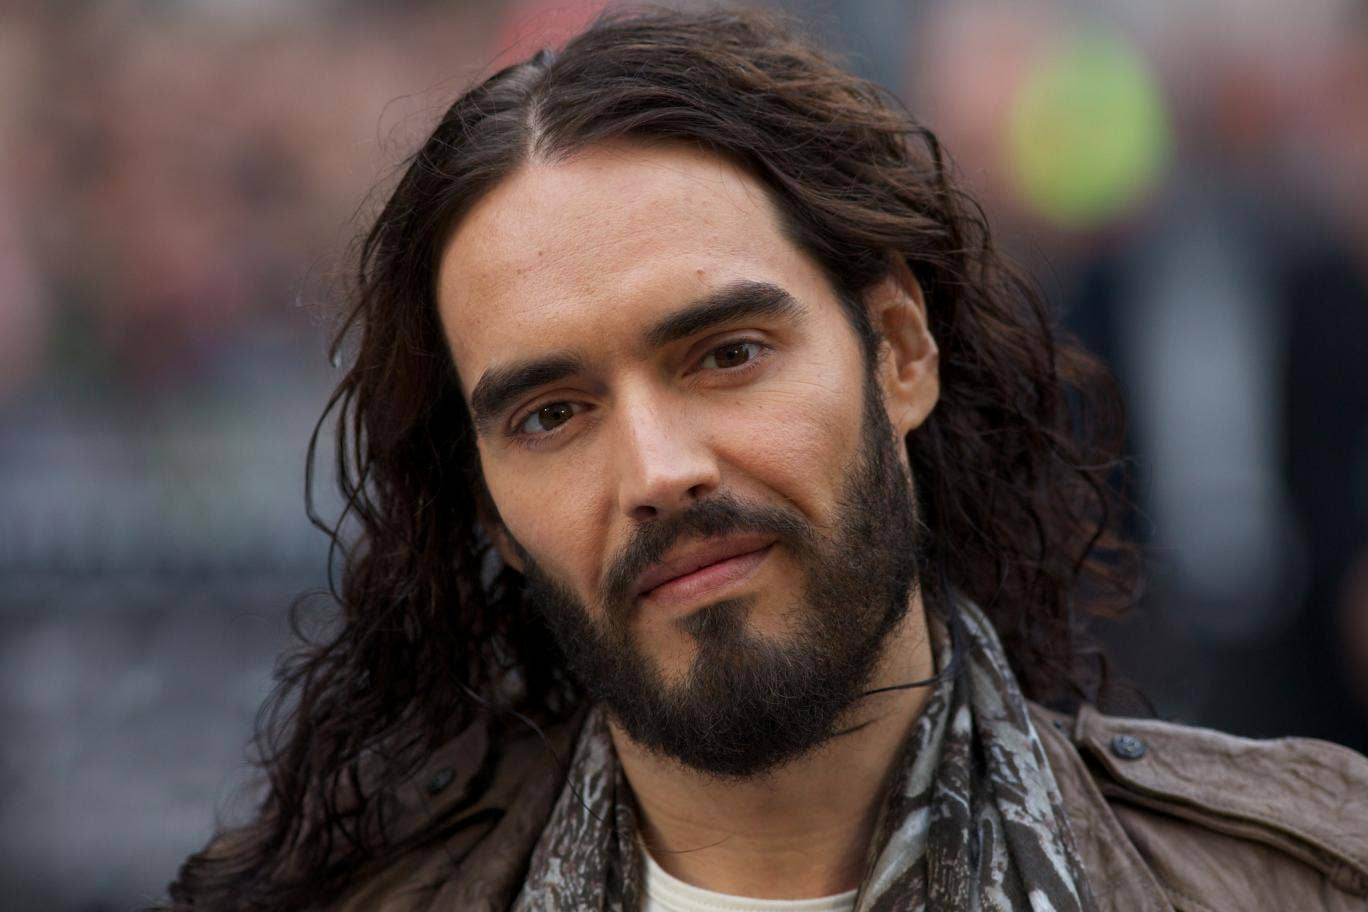 Russell Brand takes on Bill O'Reilly